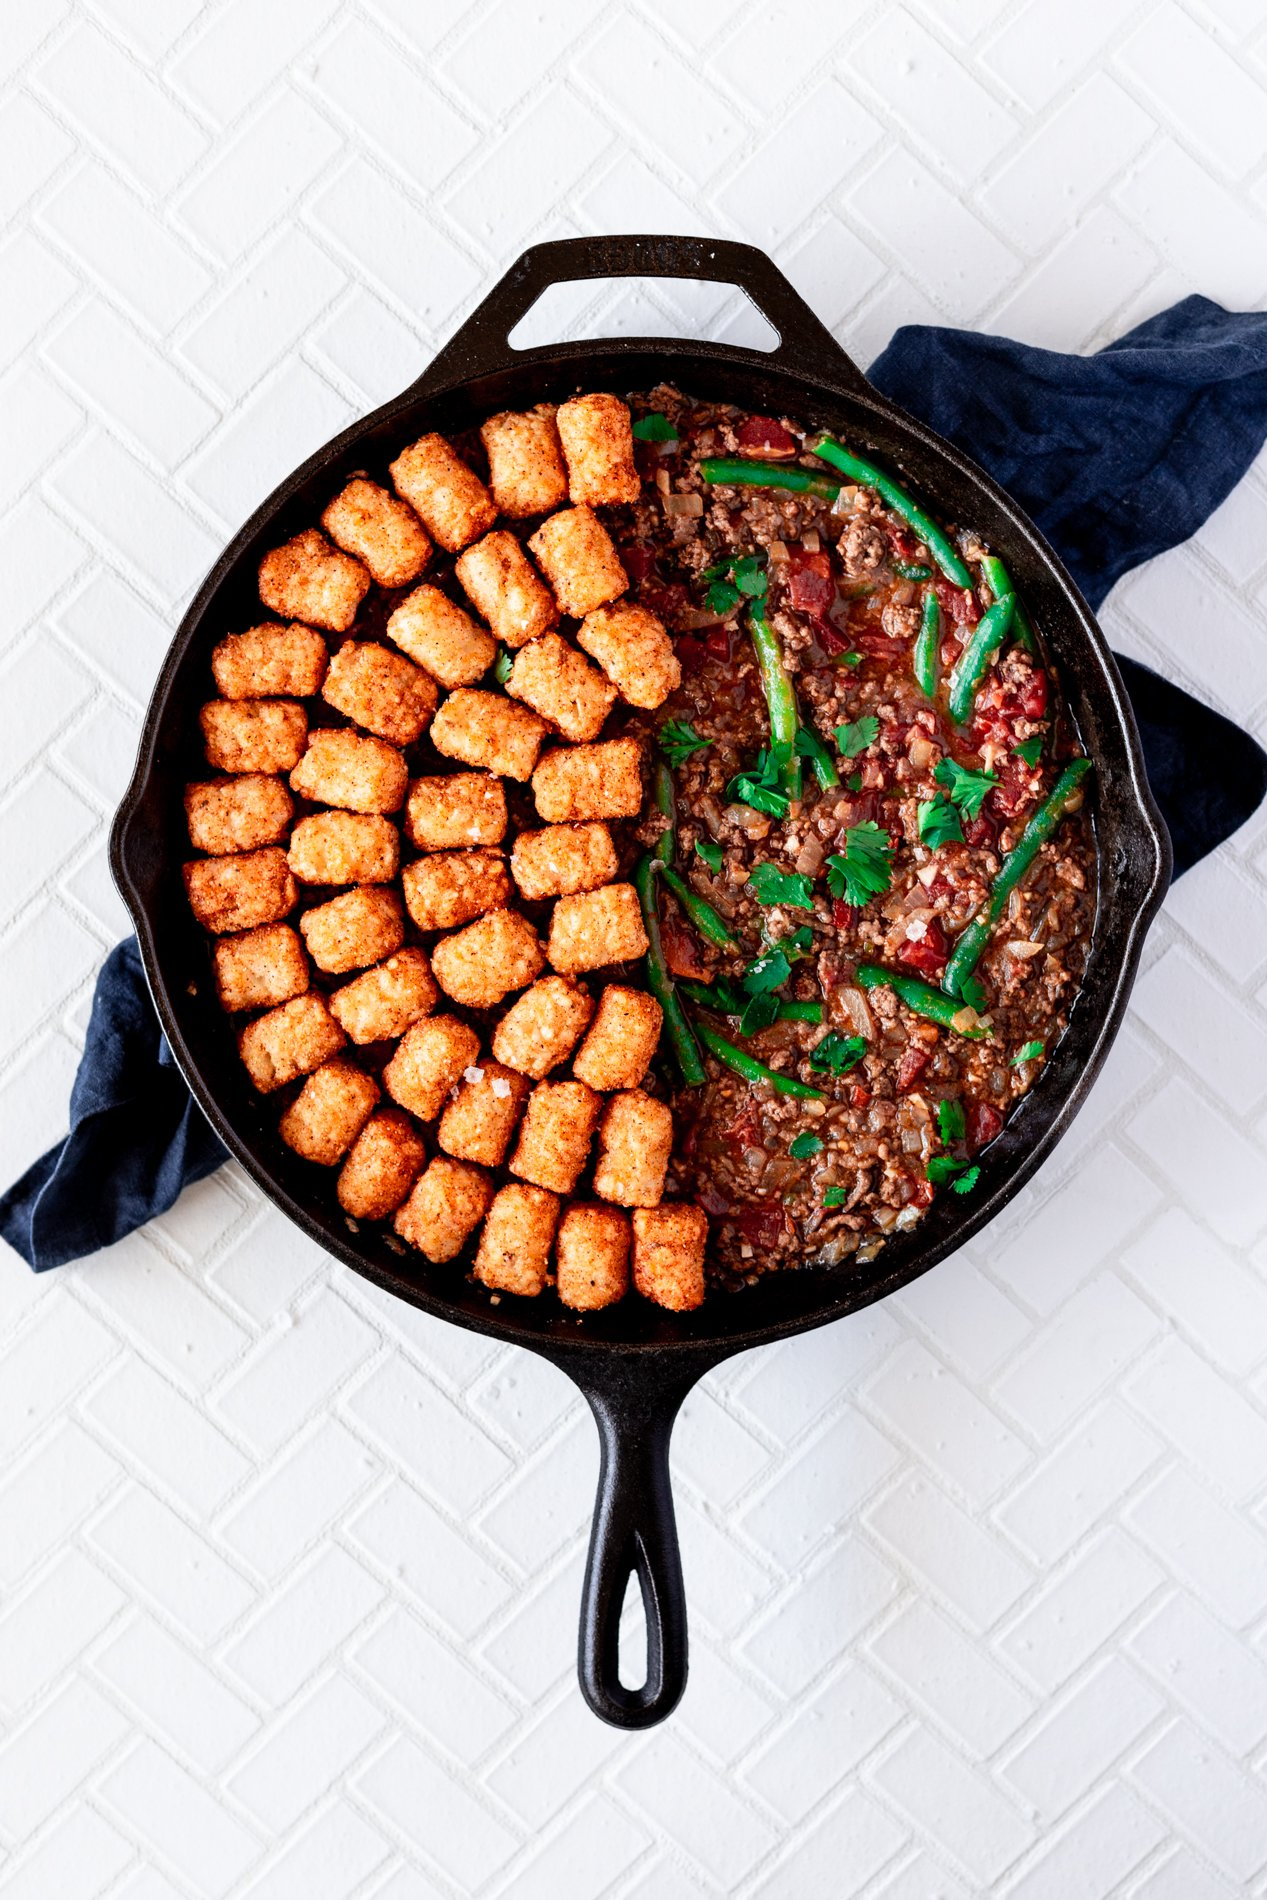 overhead view of a skillet with tater tot hotdish before the tots are baked, with the tots covering only half the skillet